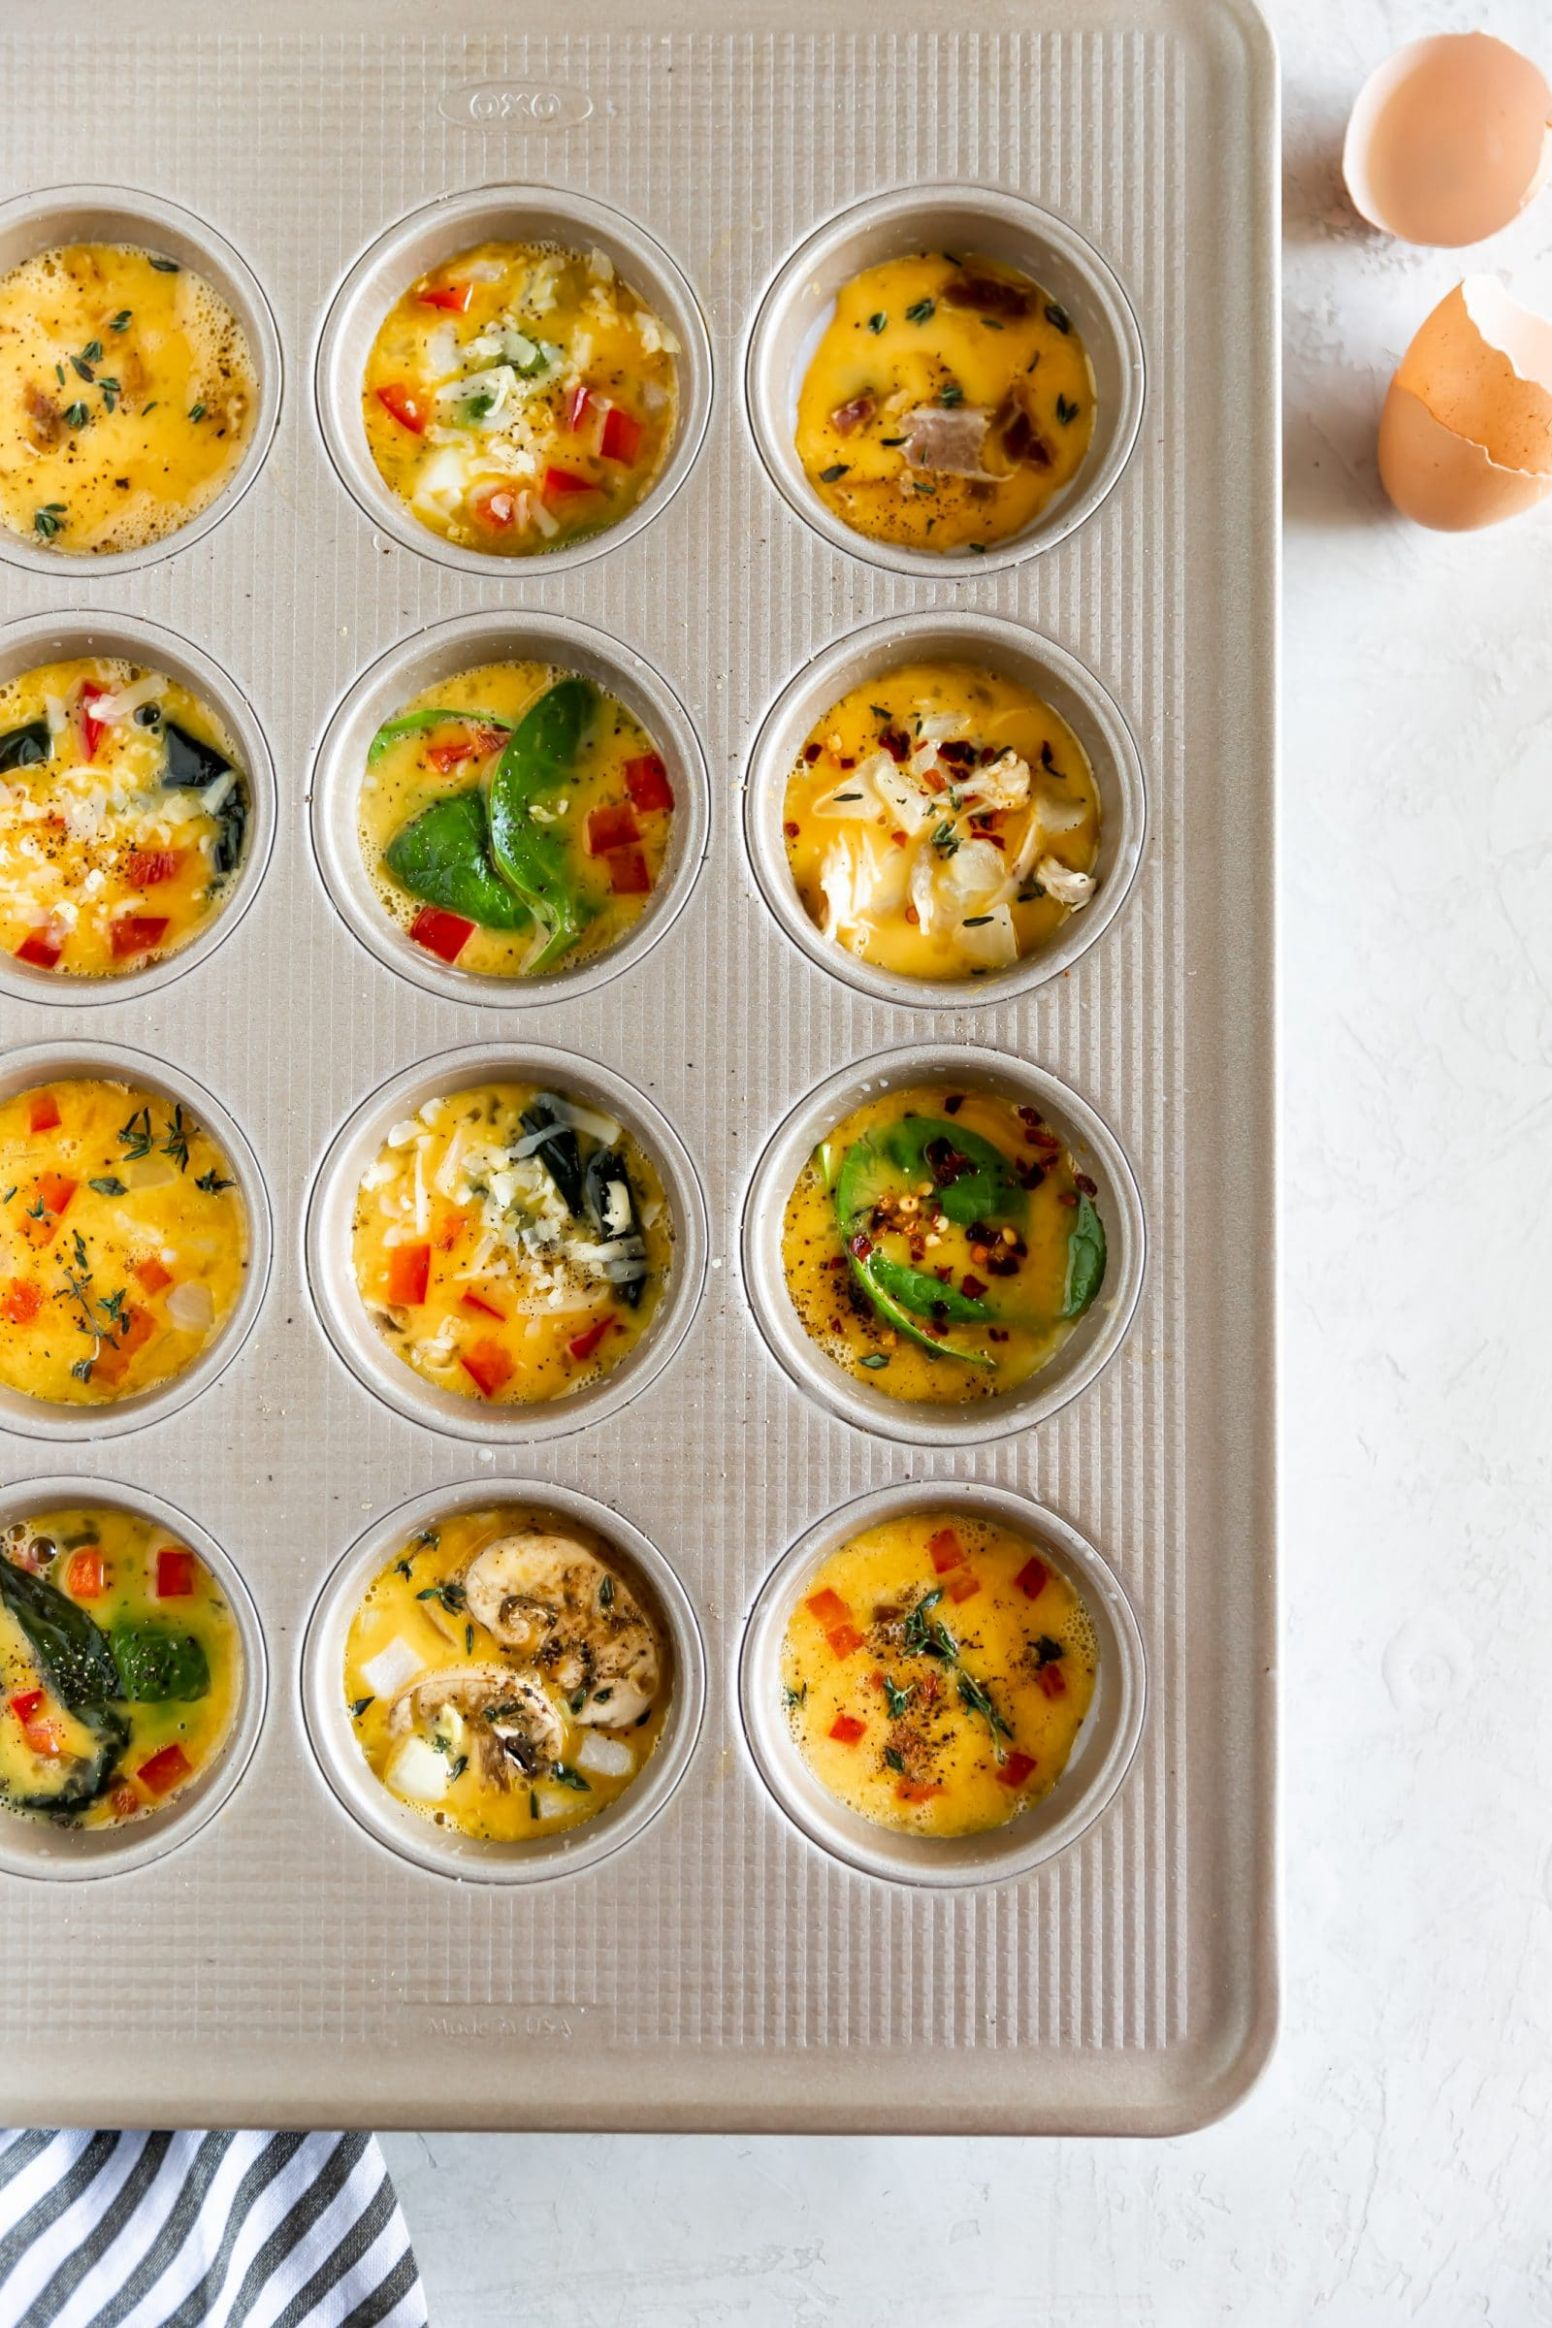 Healthy Egg Muffin Cups (Meal Prep Idea!) - A Sassy Spoon - Recipe Egg Muffin Pan